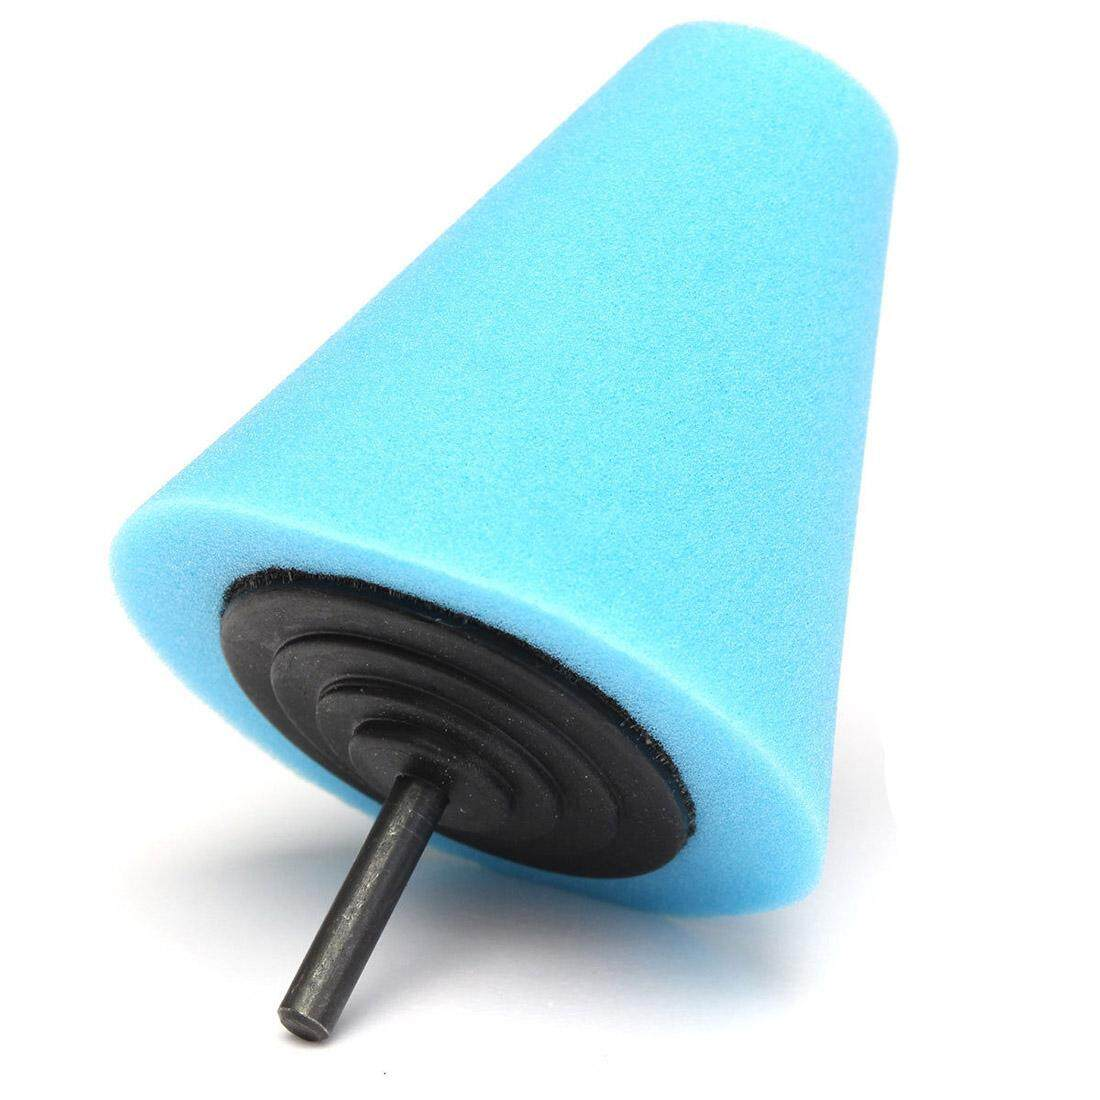 Sponge Cone Polishing Auto Buffer Pad Adapter Drill Blue By Yomichew.